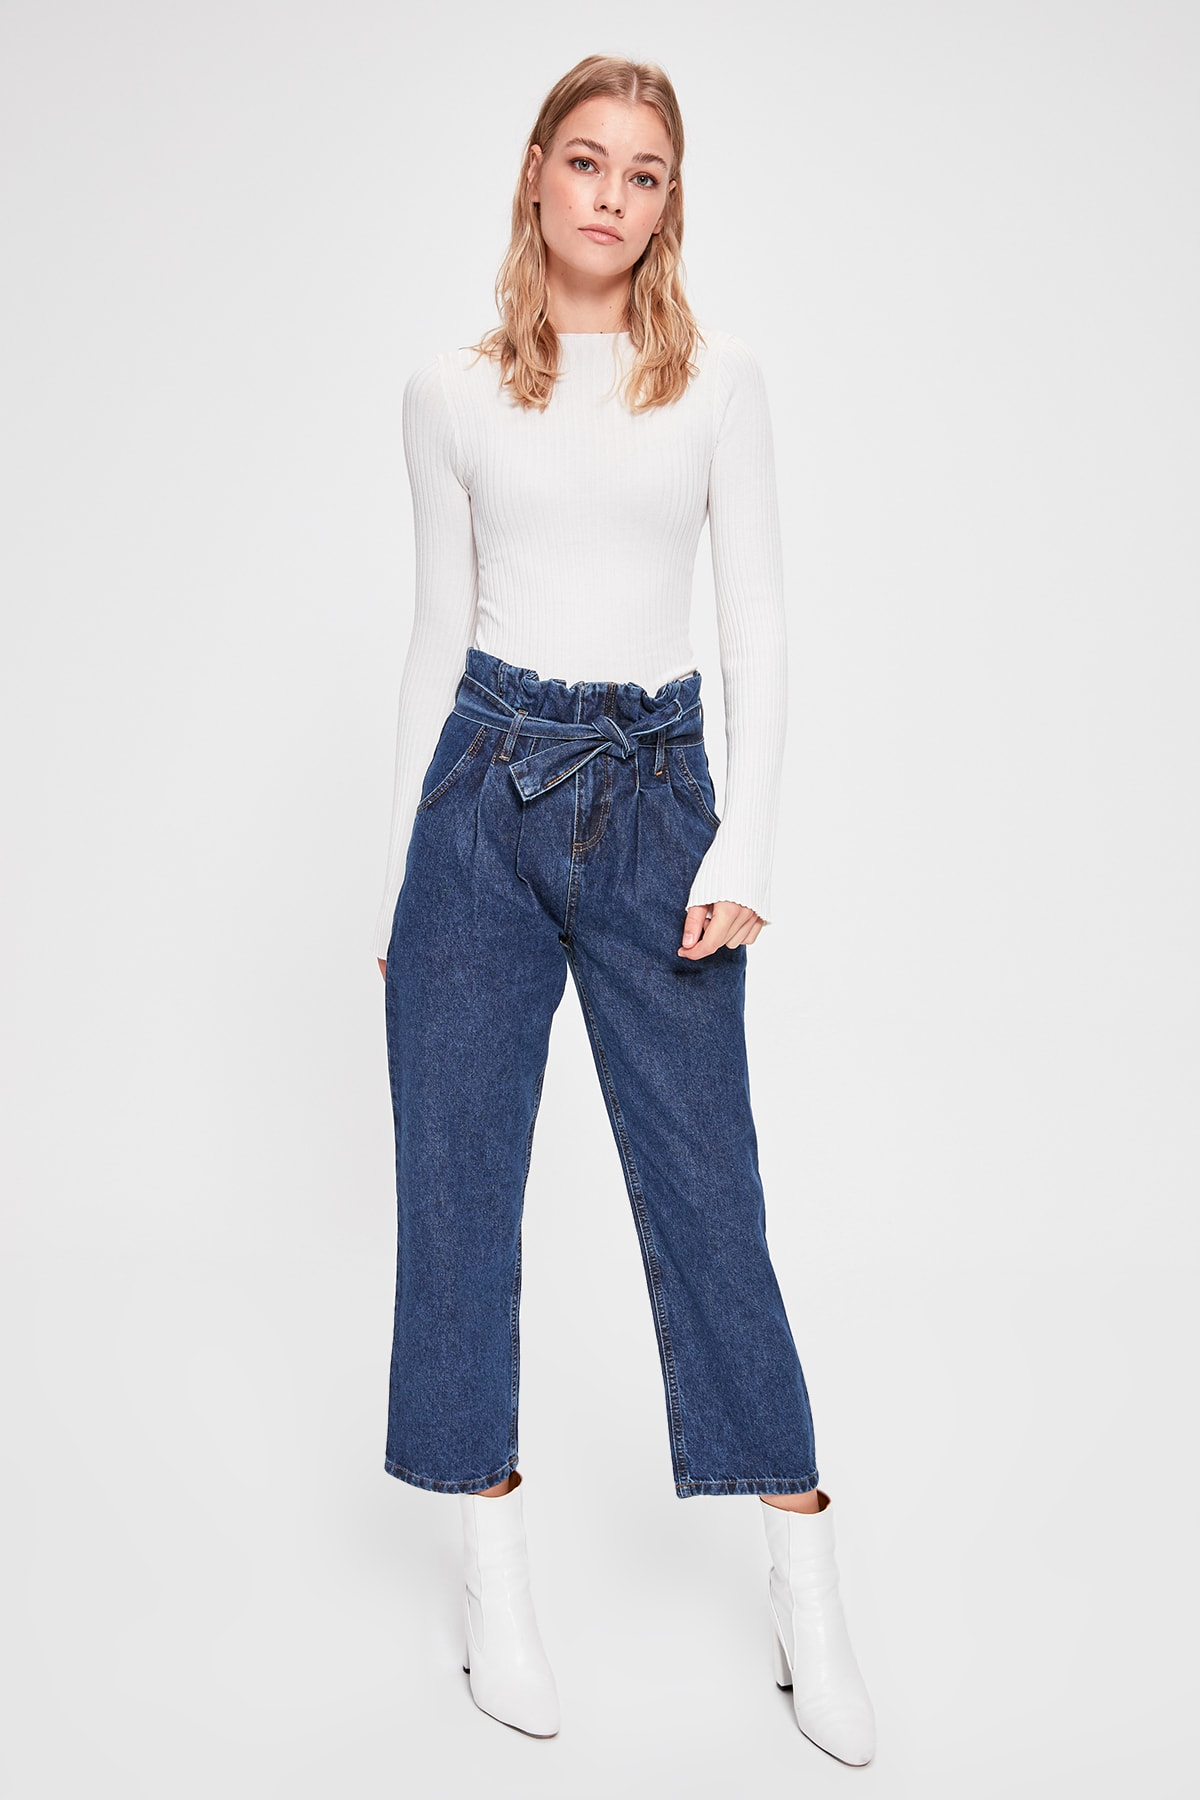 Trendyol Pleated High Waist Straight Jeans TWOAW20JE0248